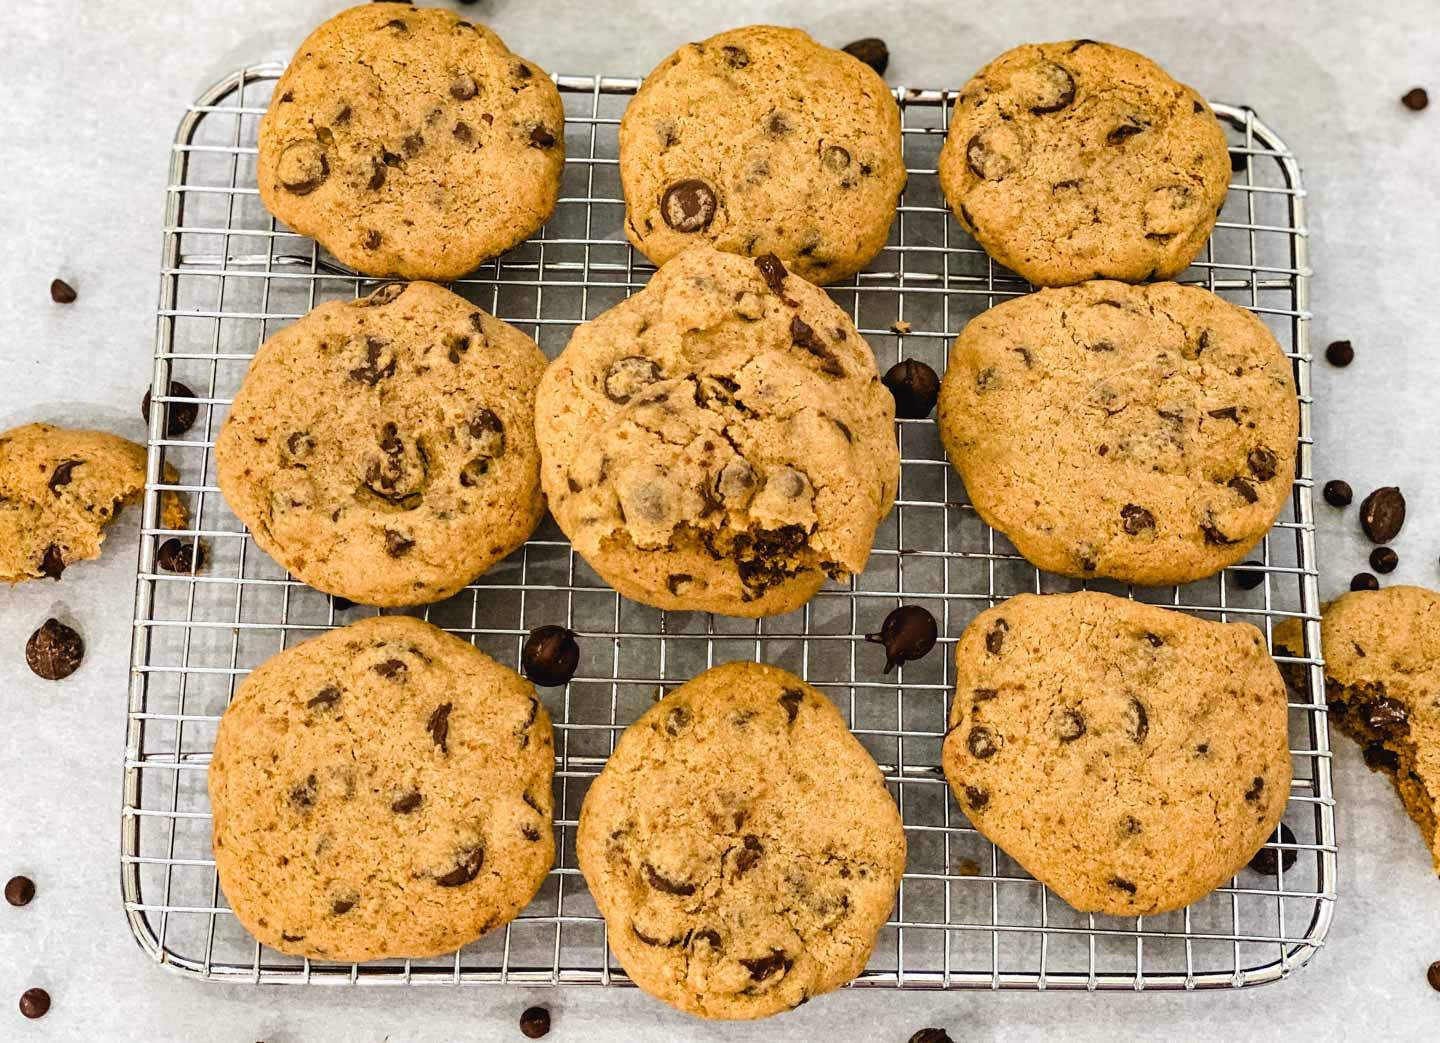 Fresh baked gluten free chocolate chip cookies on a cooling rack with parchment paper underneath them.